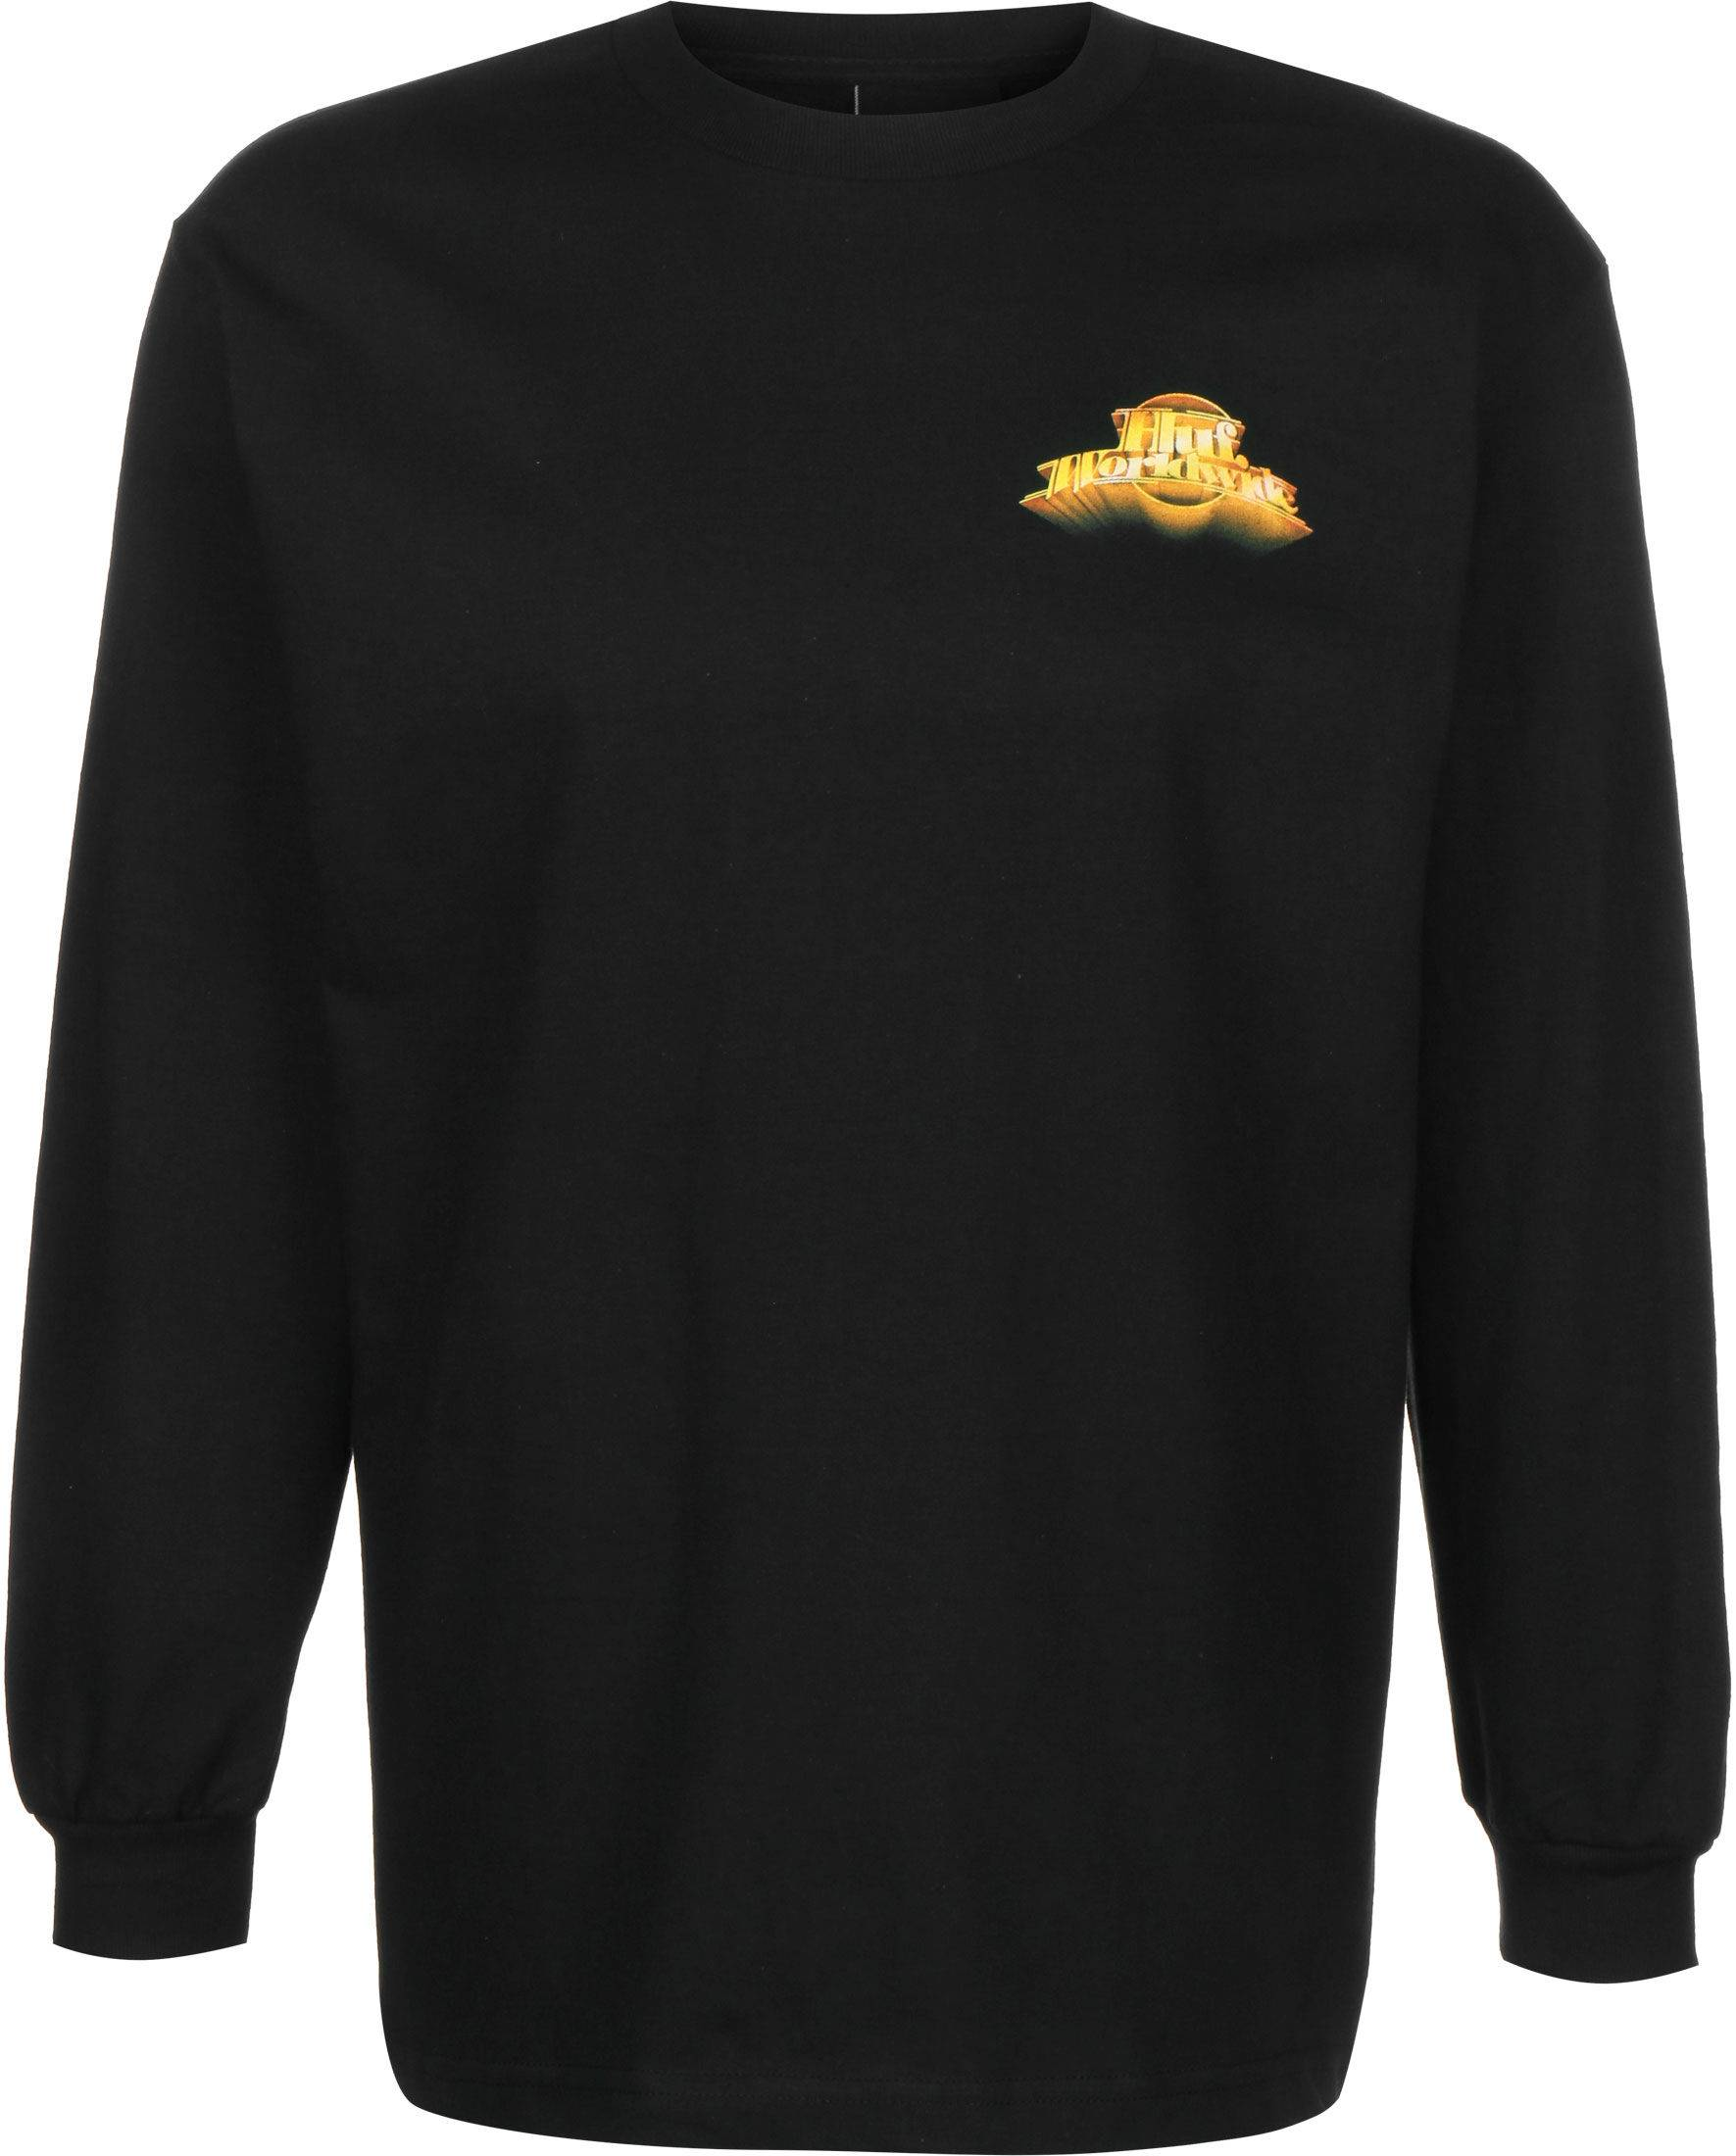 HUF Greatest Hits, taille L, homme, noir